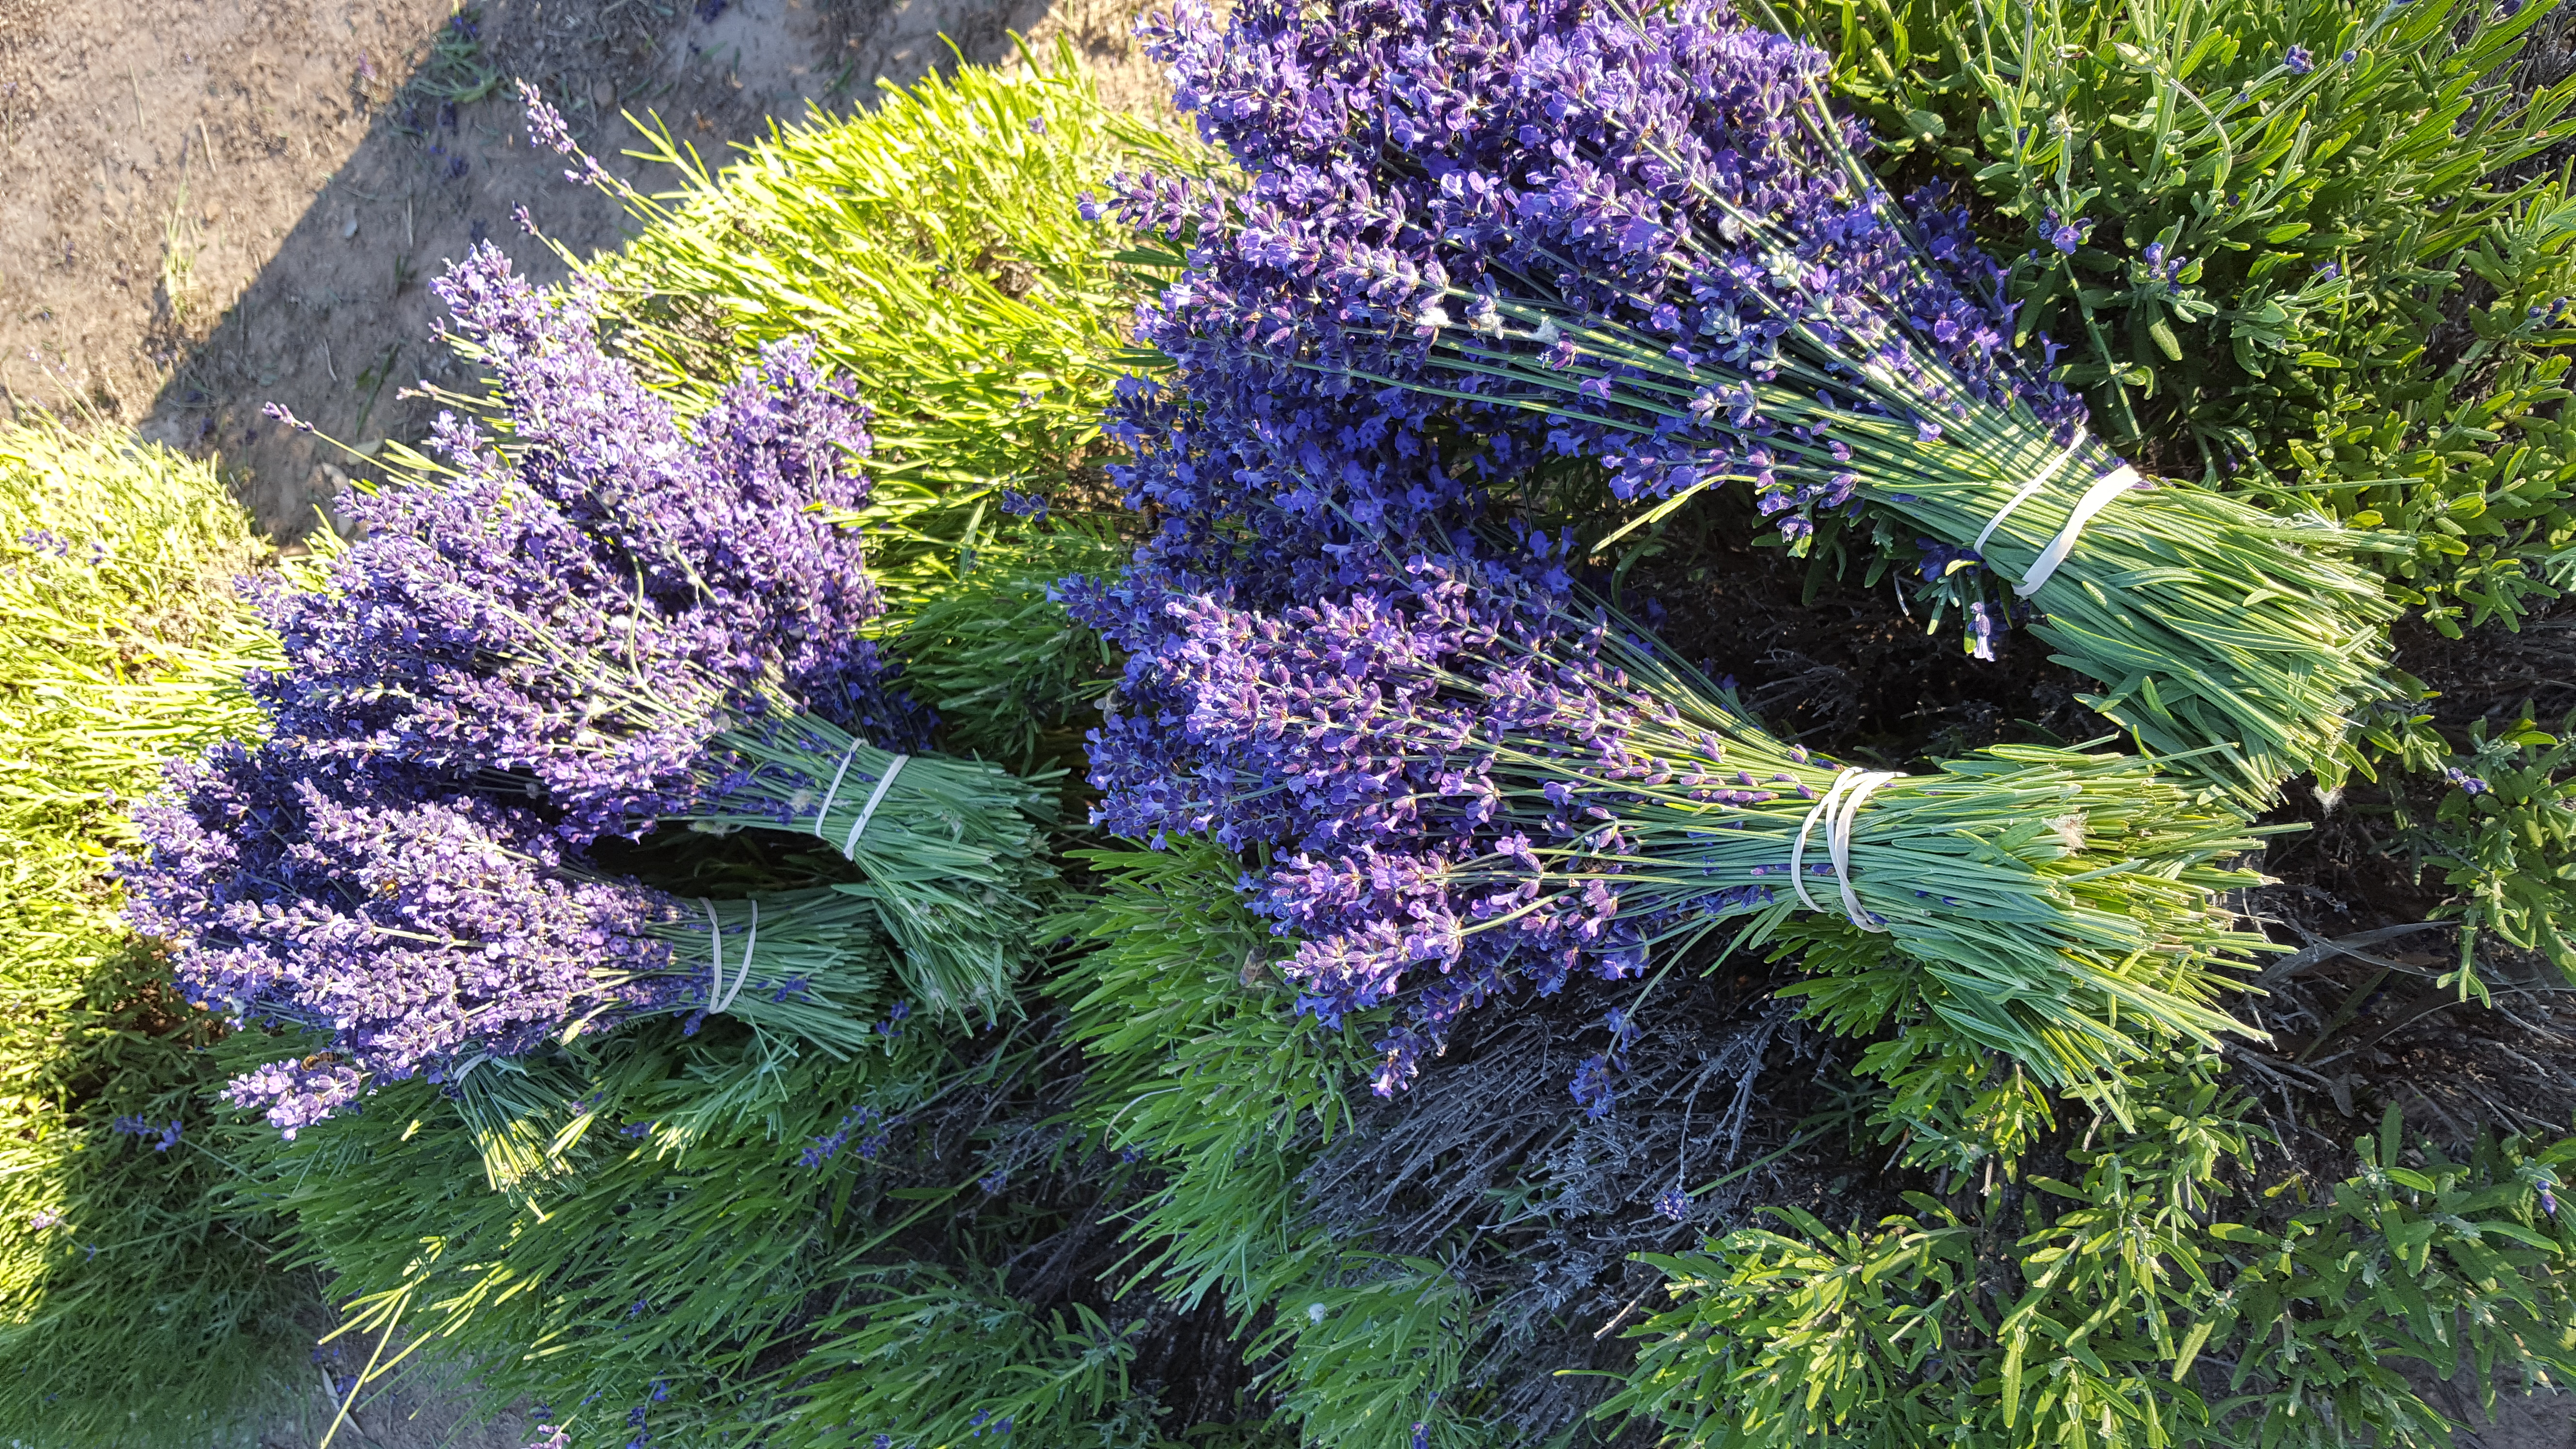 Lavandula angustifolia Egerton Blue - one of the best culinary lavenders